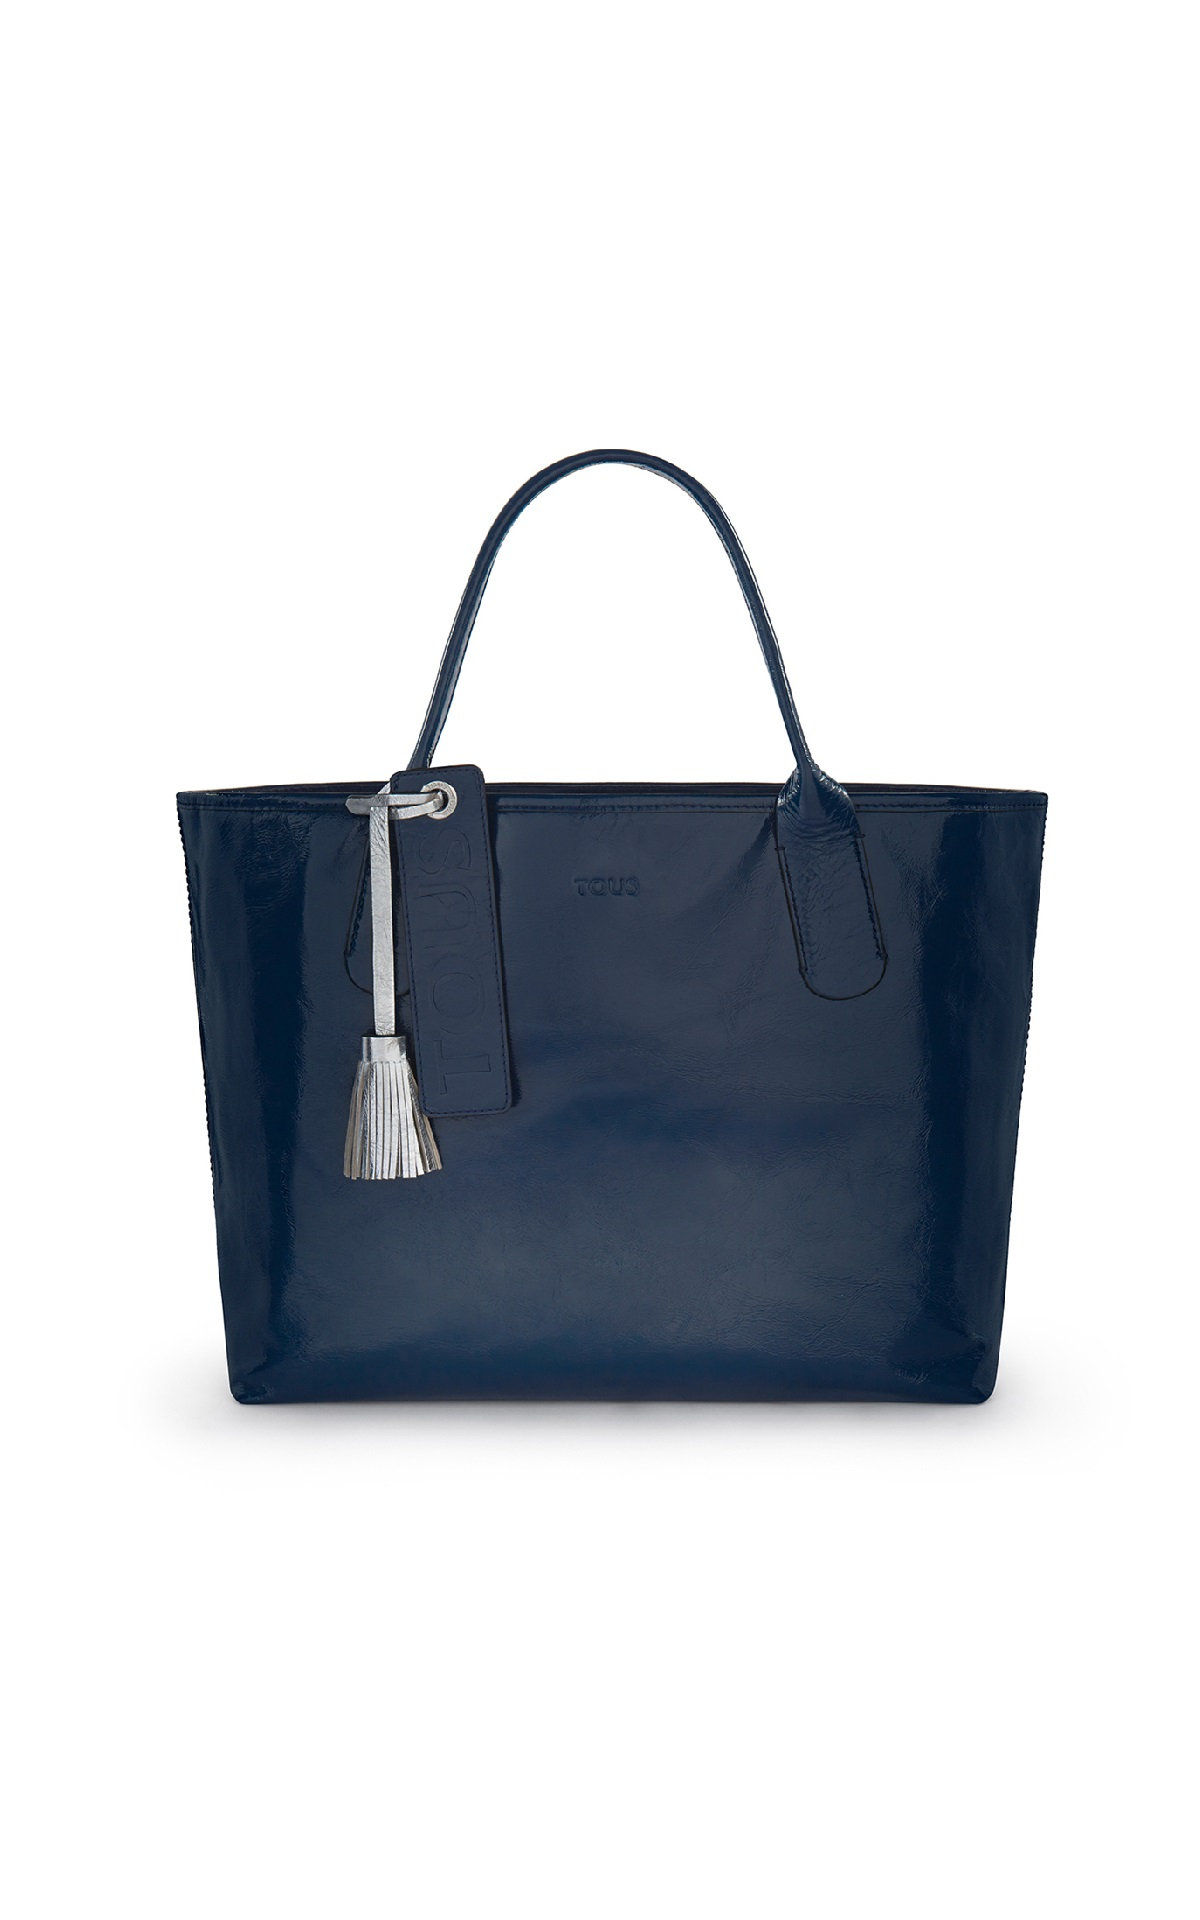 Navy blue leather tote bag Tous